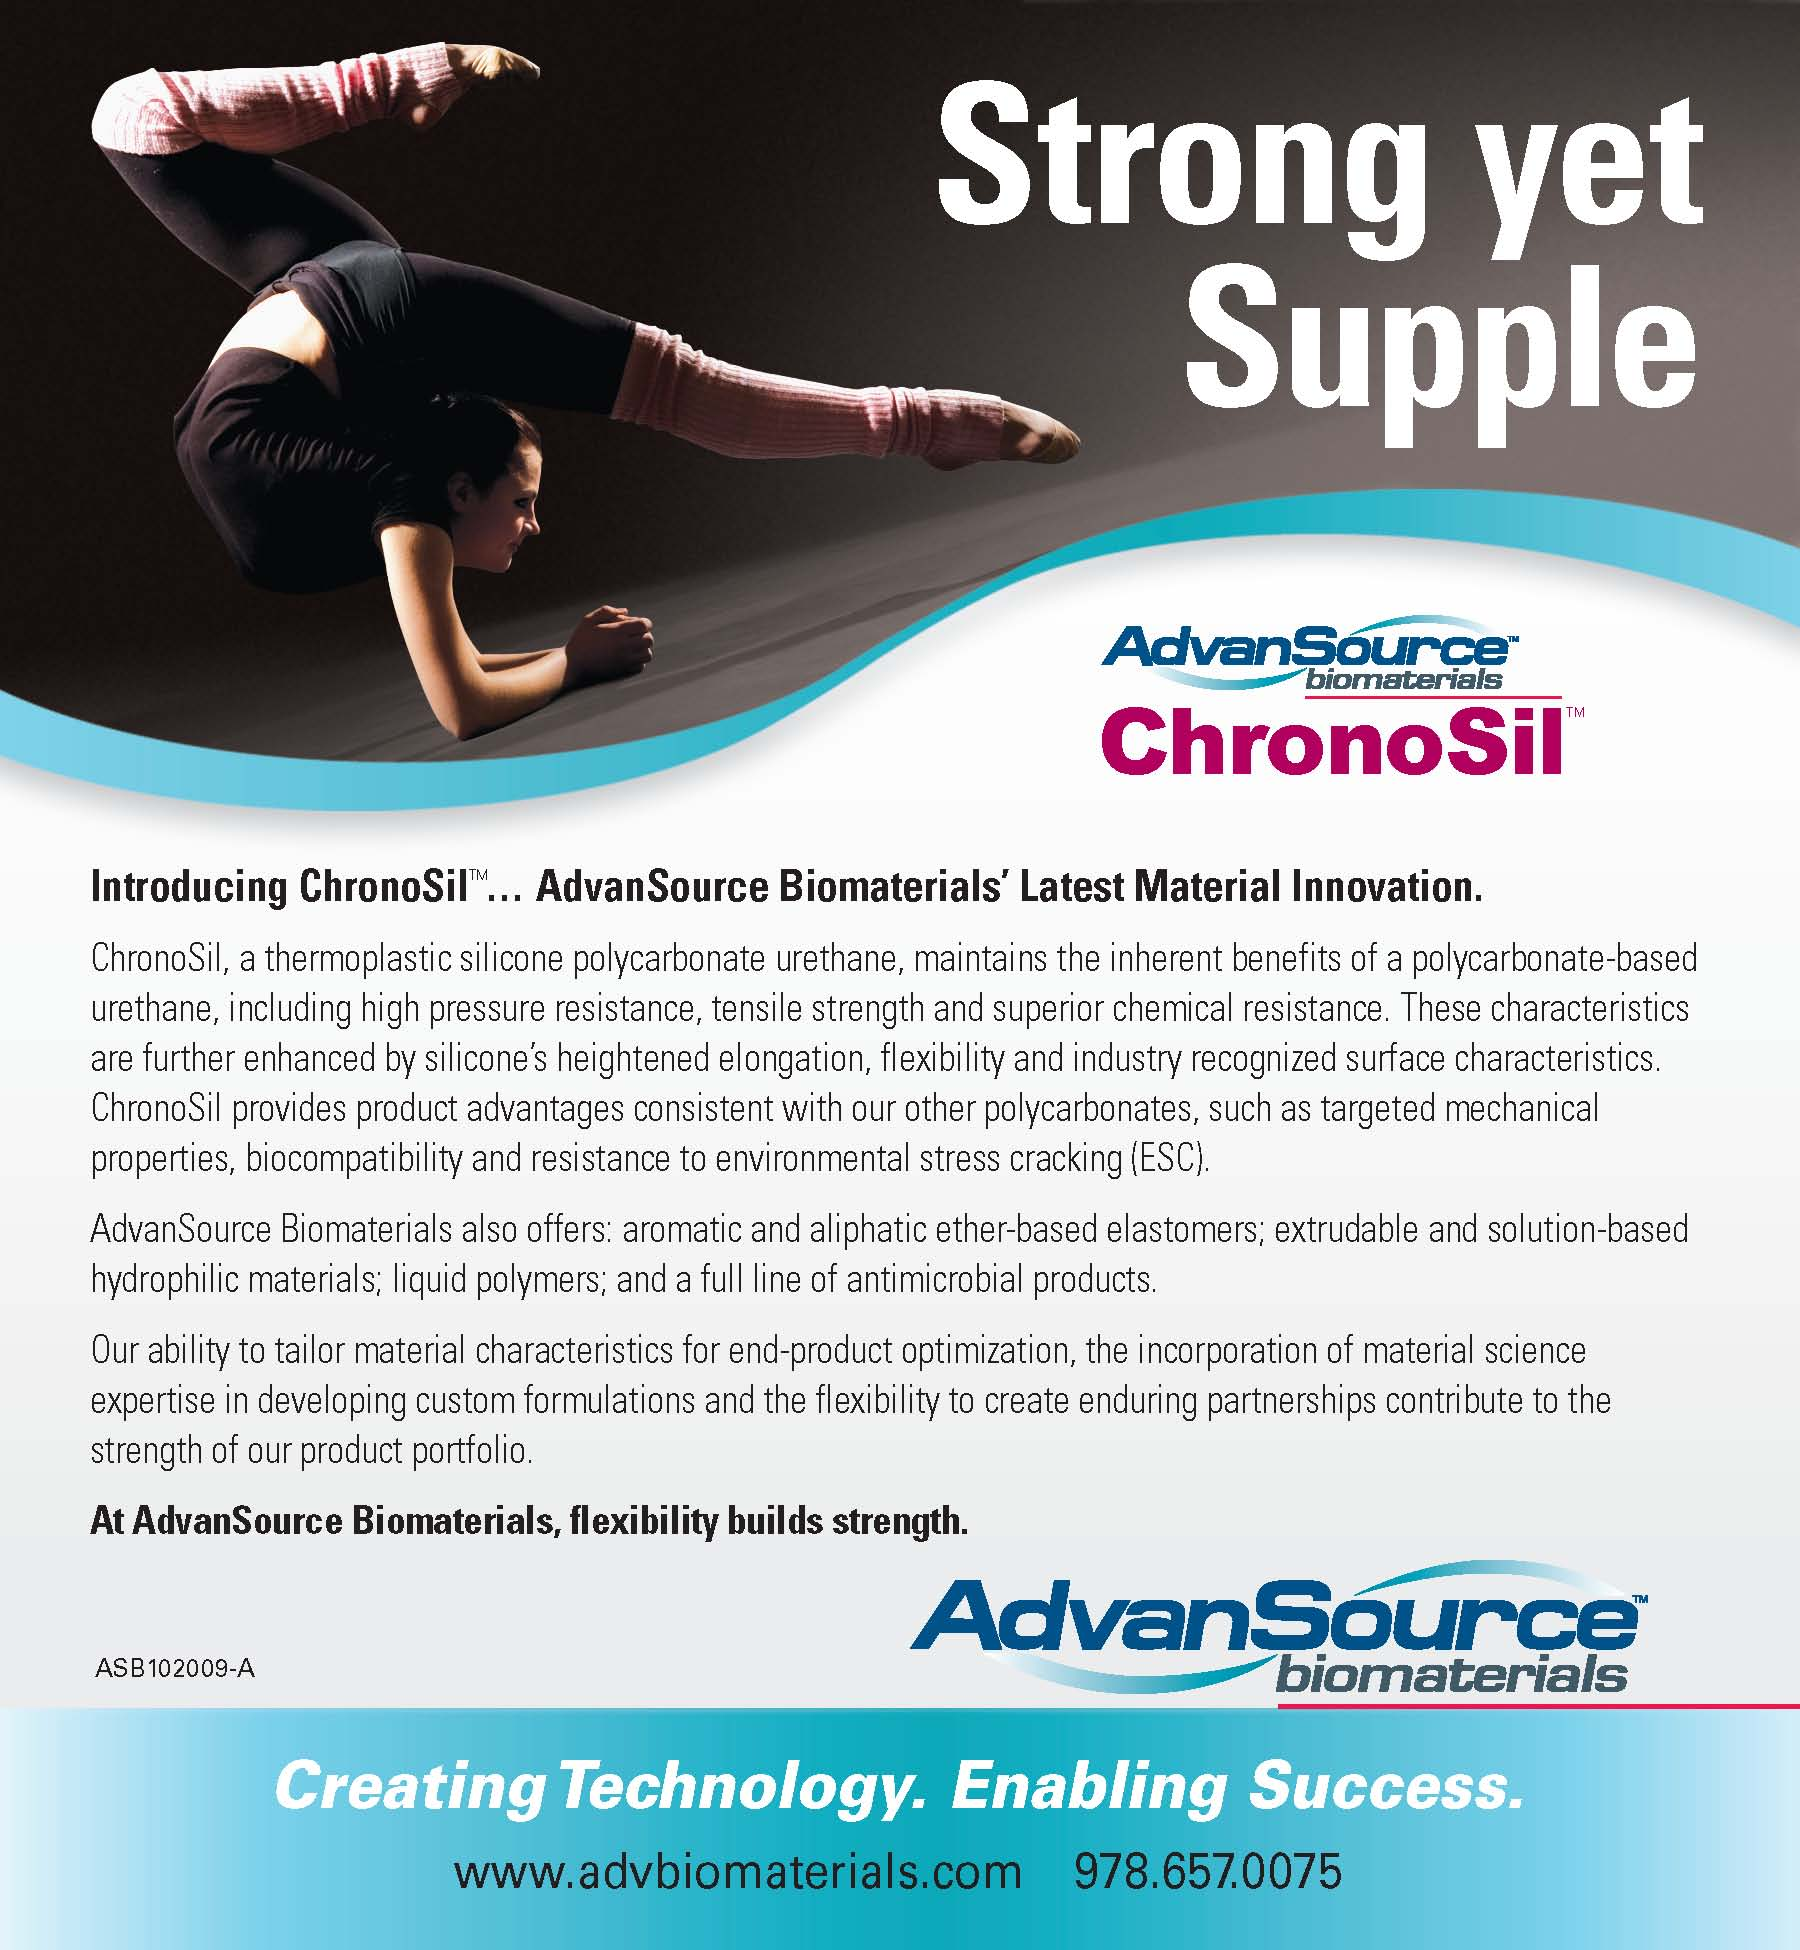 New Product Development - ChronoSil